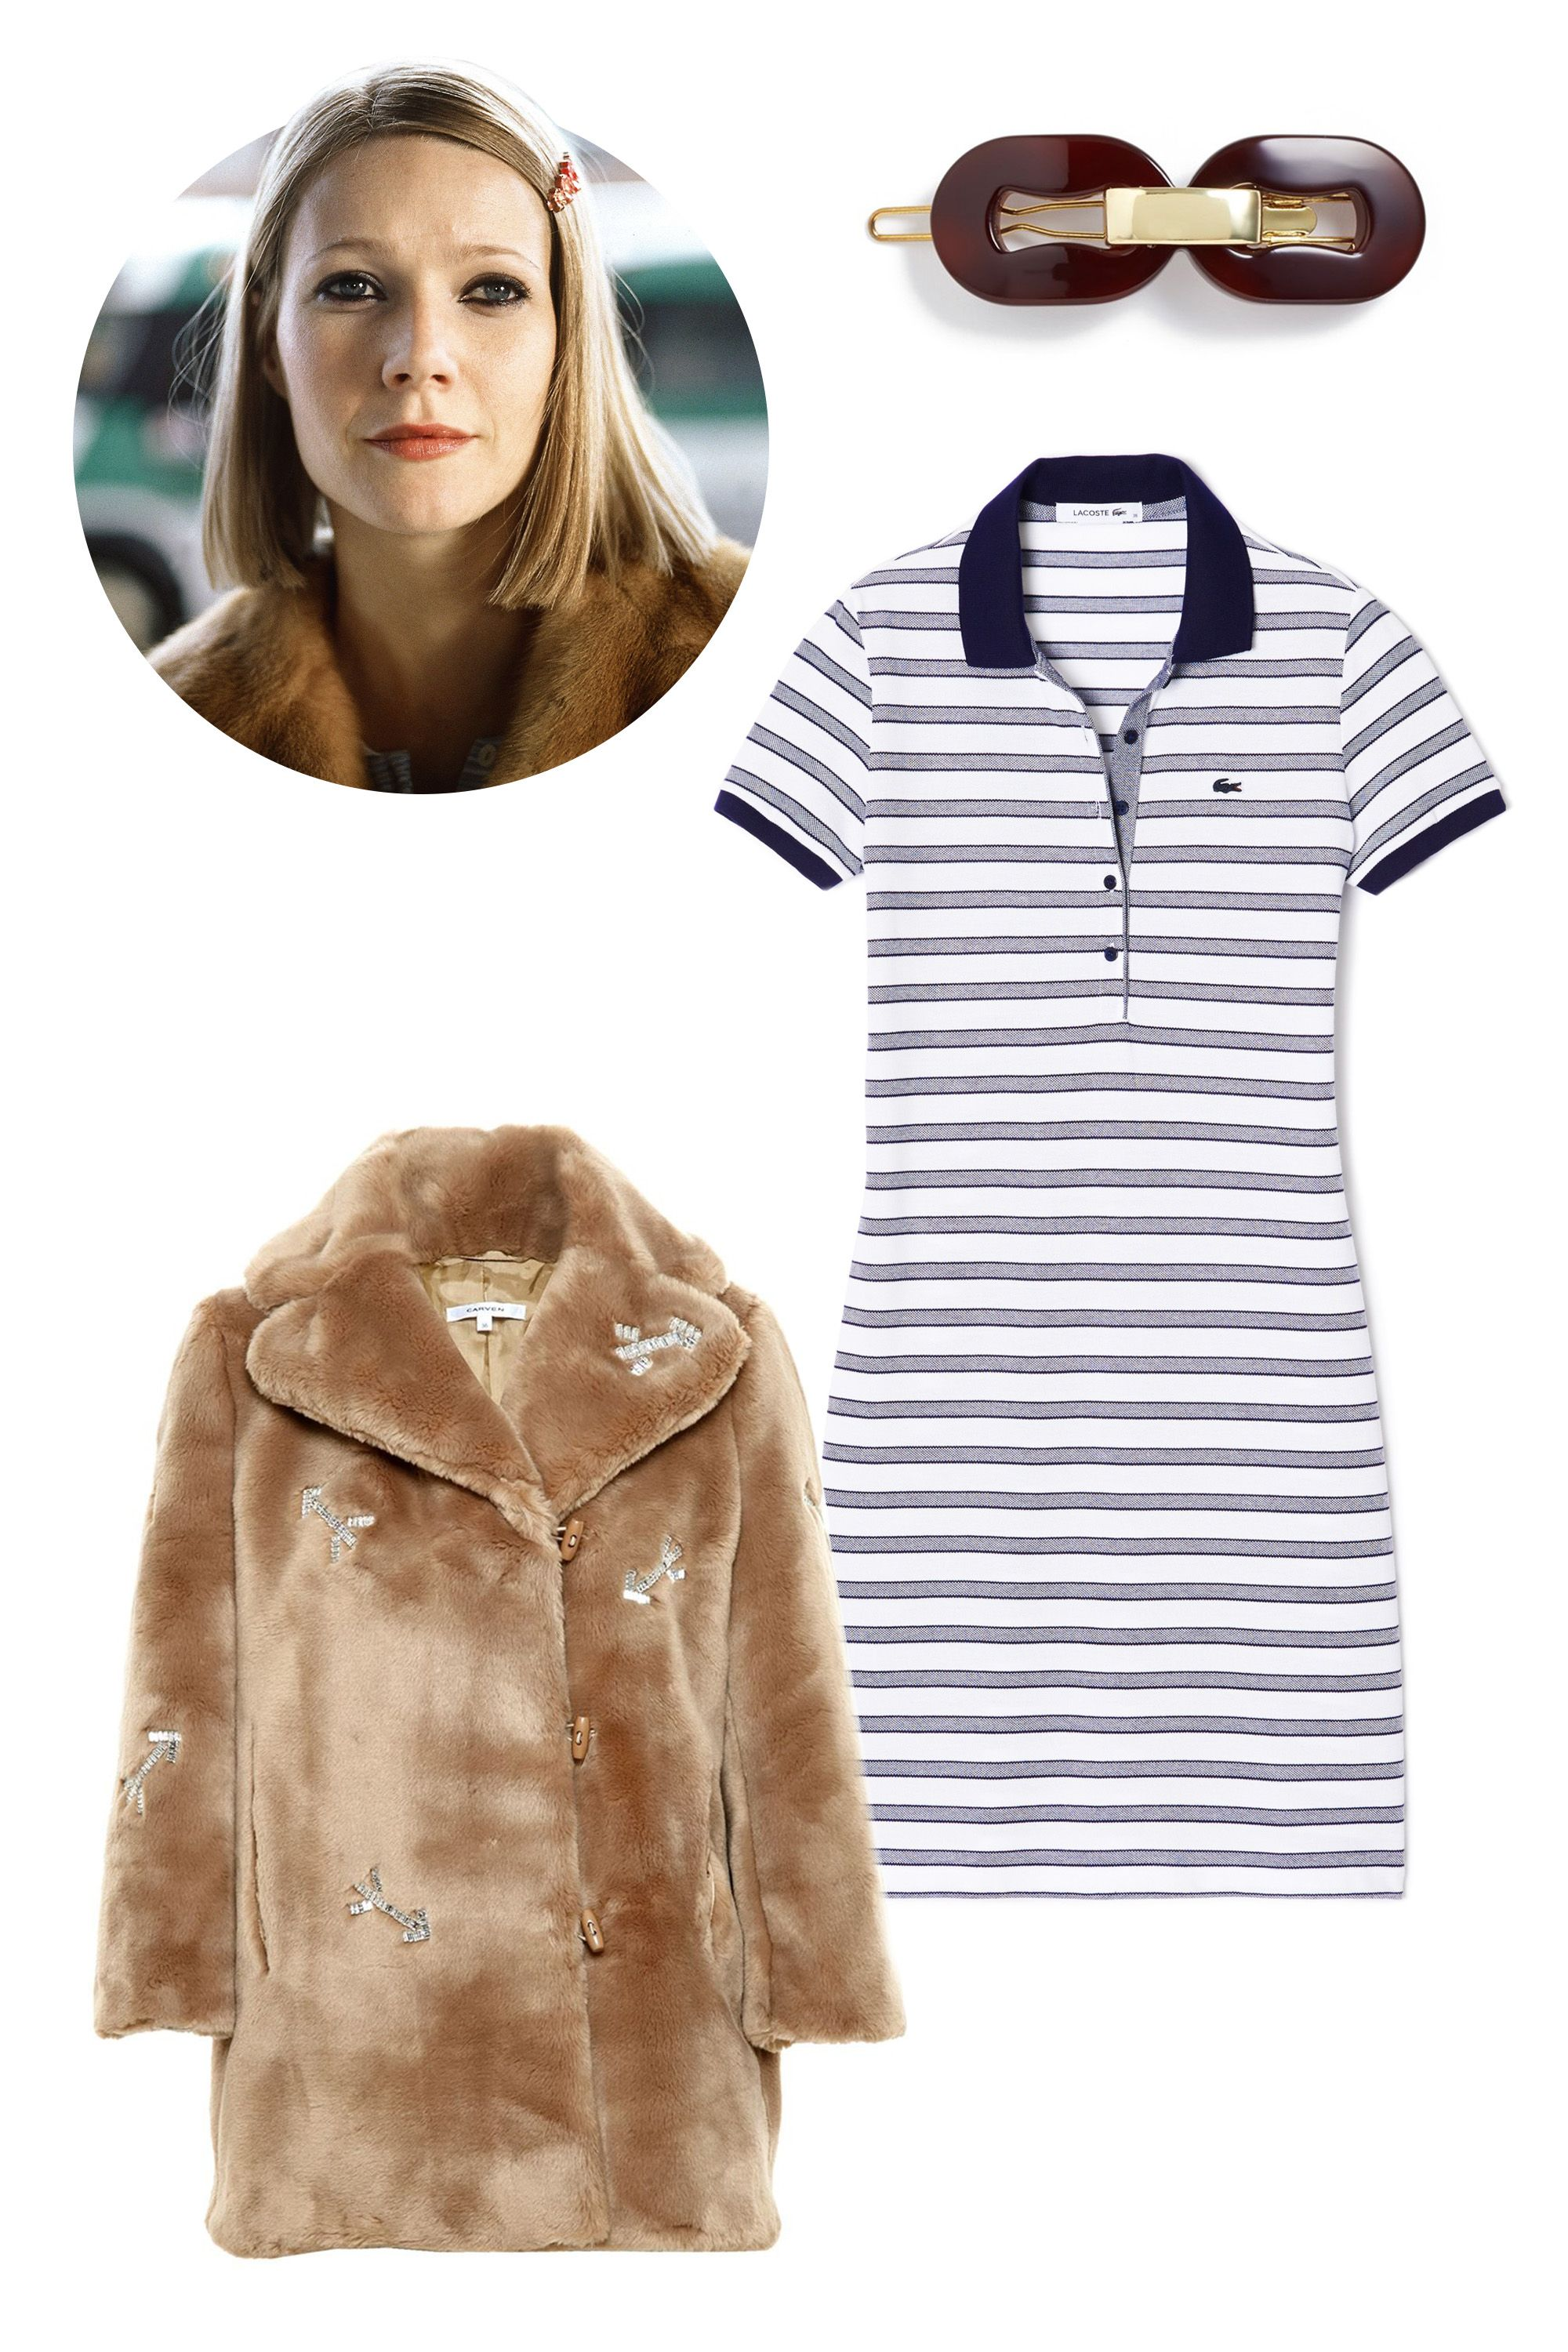 "<p>Carven Crystal Embellished Faux Fur Coat, $1,470; <a href=""http://www.farfetch.com/shopping/item10849317.aspx"">farfetch.com</a></p><p>L. Erickson Metal Link Tige Boule Barrette, $45; <a href=""http://shop.nordstrom.com/s/l-erickson-metal-link-tige-boule-barrette/4056095?cm_mmc=polyvorecpcdesktop-_-datafeed-_-women:hair_accessories:hair_accessories-_-1134123&mr:referralID=0872effc-2ac7-11e5-bcb1-00505694526f"">nordstrom.com</a></p><p>Lacoste Stripe Pique Polo Dress, $82; <a href=""http://www.lacoste.com/us/lacoste/women/clothing/dresses-skirts/stripe-pique-polo-dress/EF7189-51.html?dwvar_EF7189-51_color=525"">lacoste.com</a></p>"